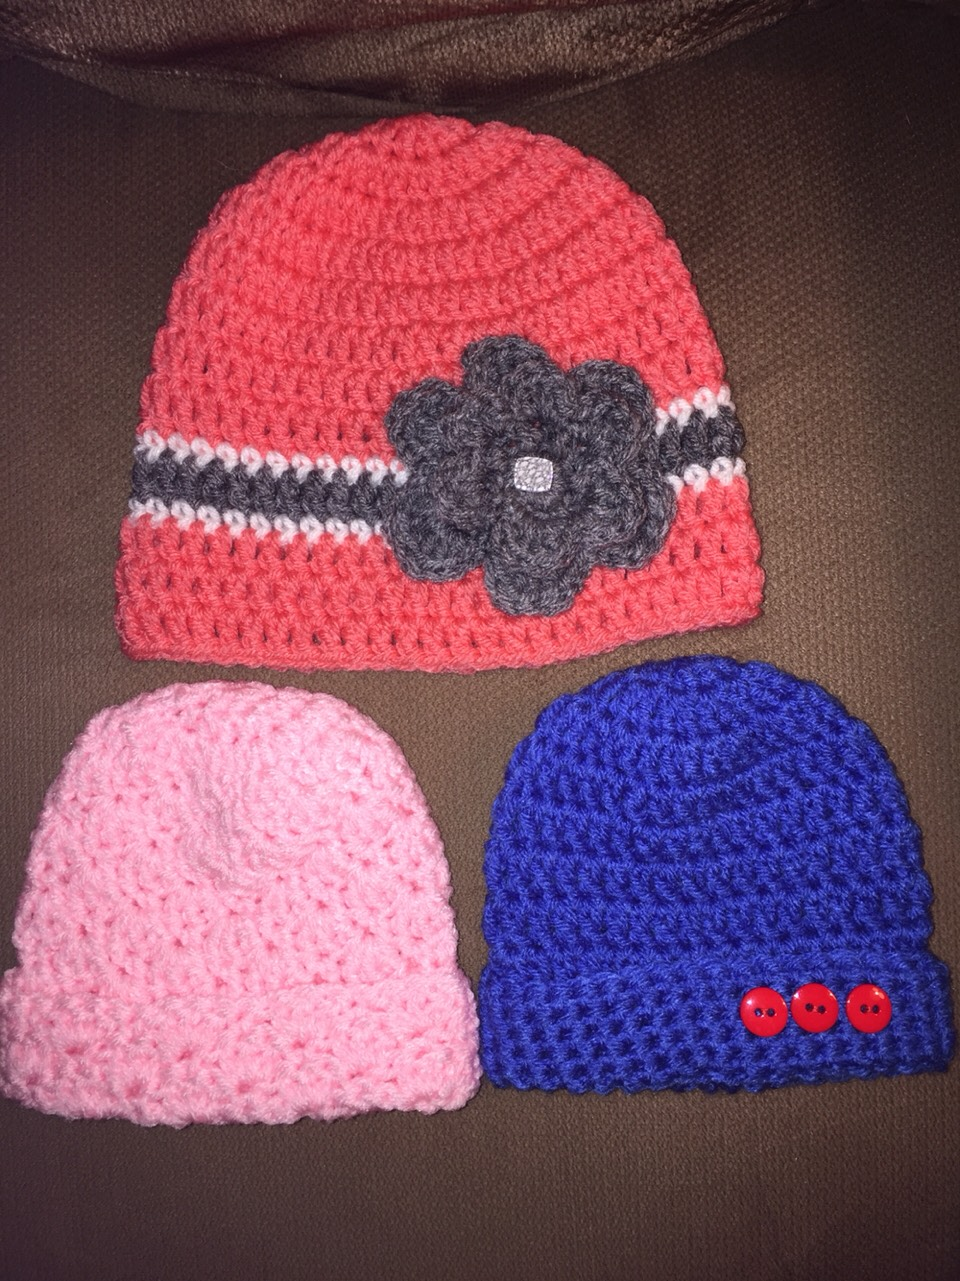 Selling baby and adult hats. can make boot cuffs, scarves, blankets, head bands. CAN SHIP ANYWHERE IN THE U.S